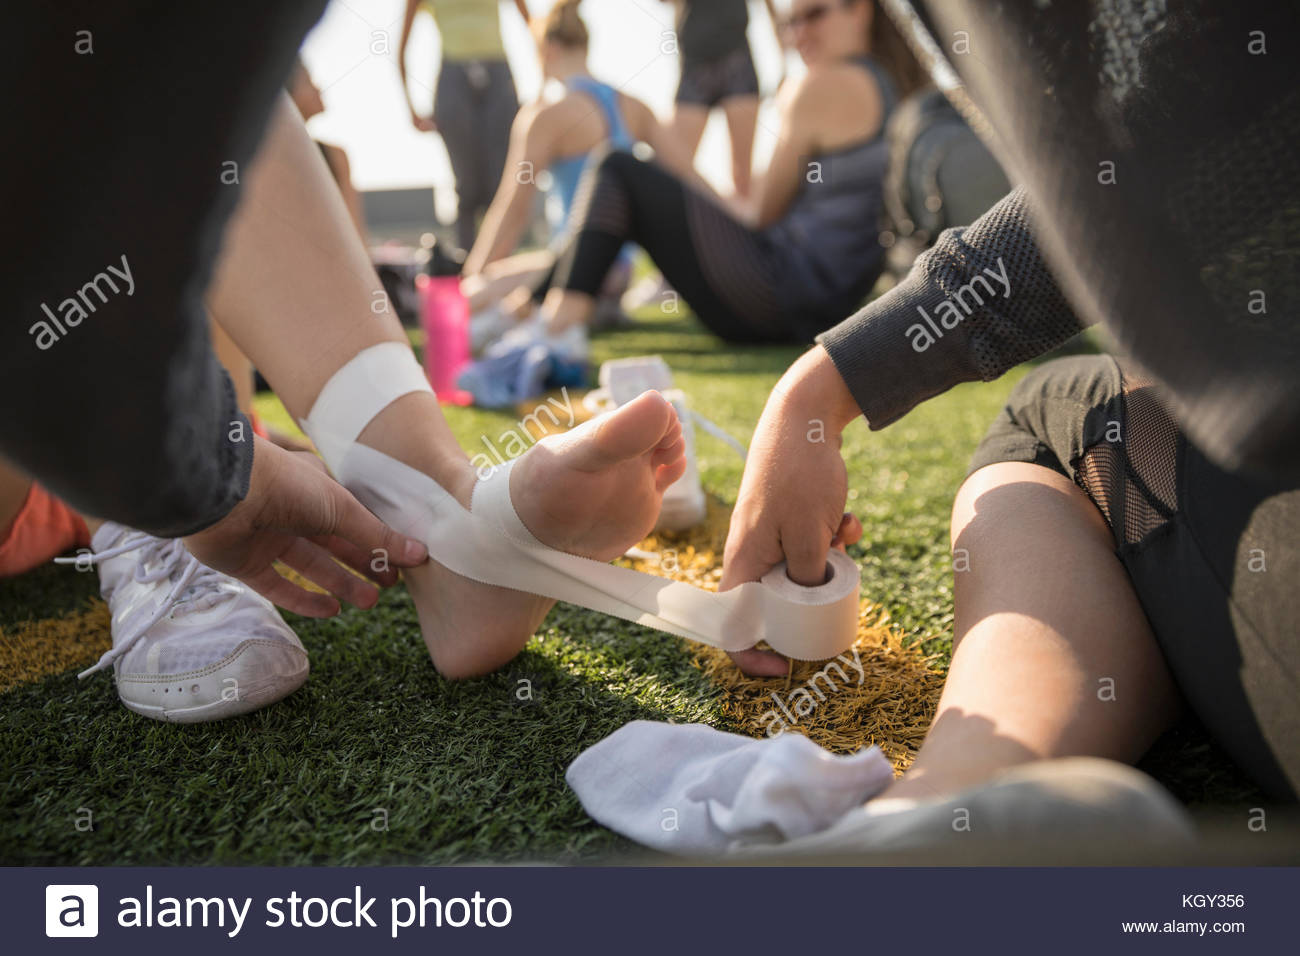 Teenage girl high school cheerleading team taping feet and ankle with tape - Stock Image